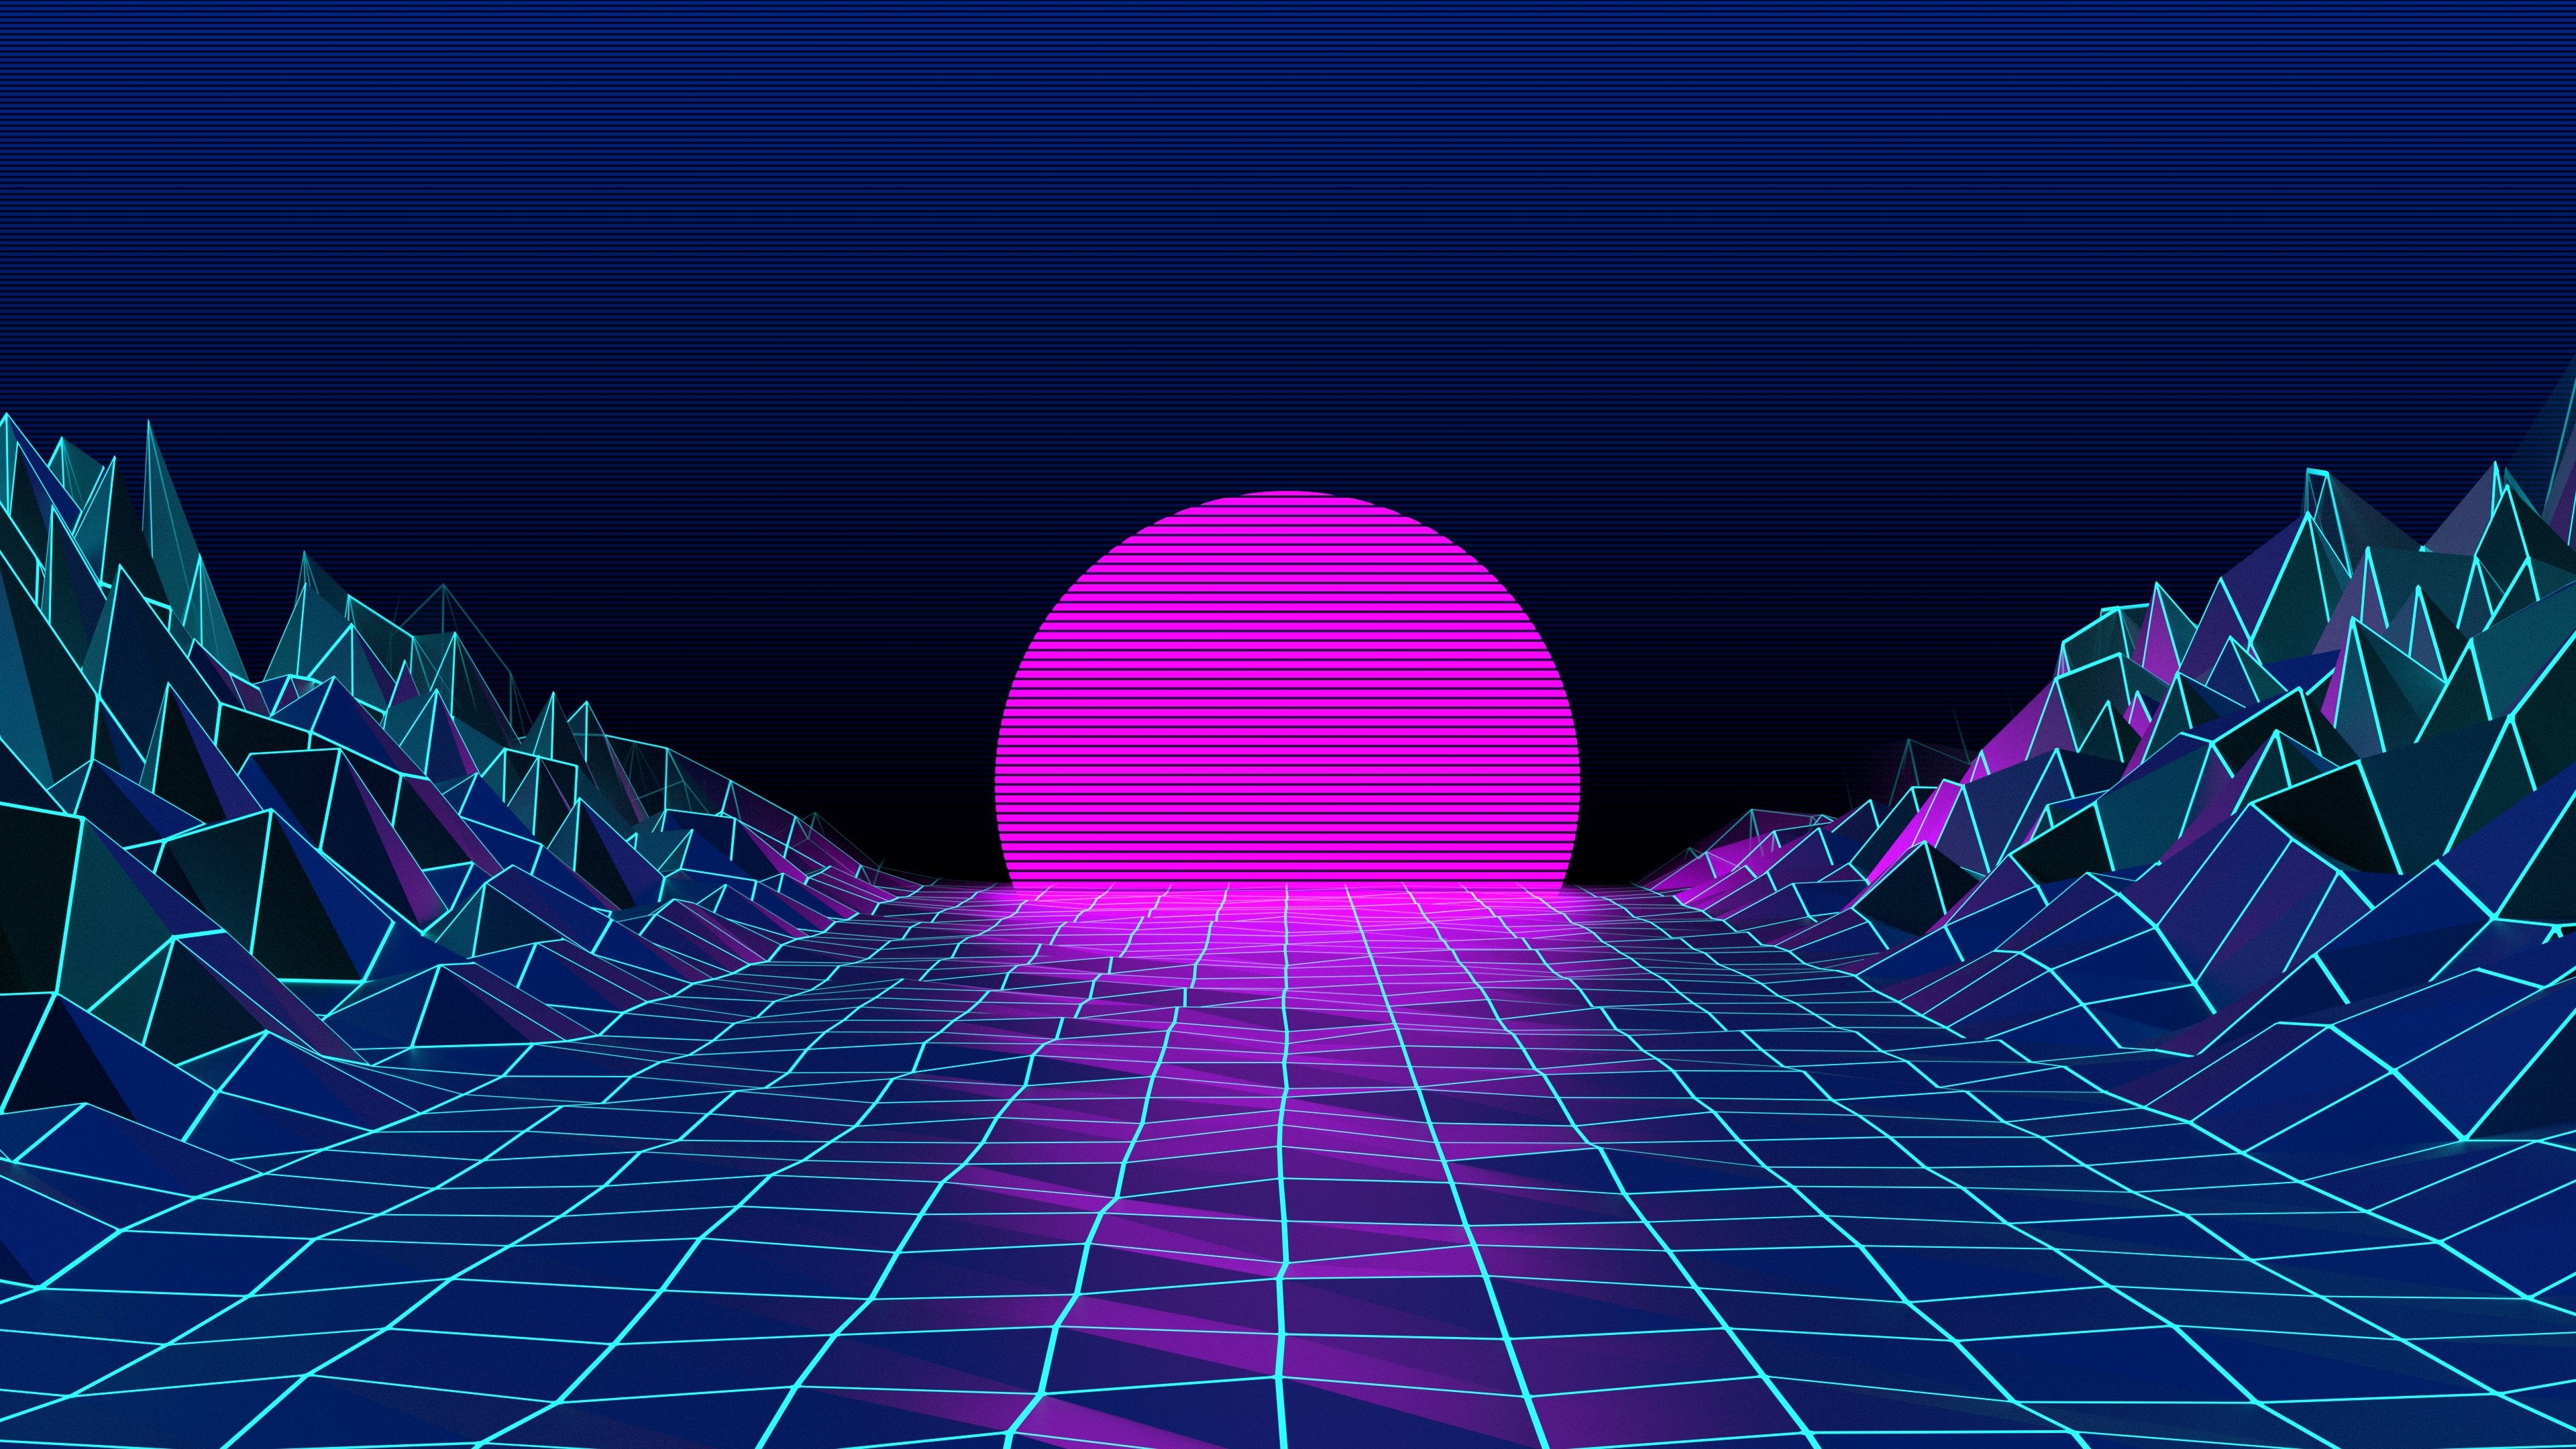 retro 80s wallpaper